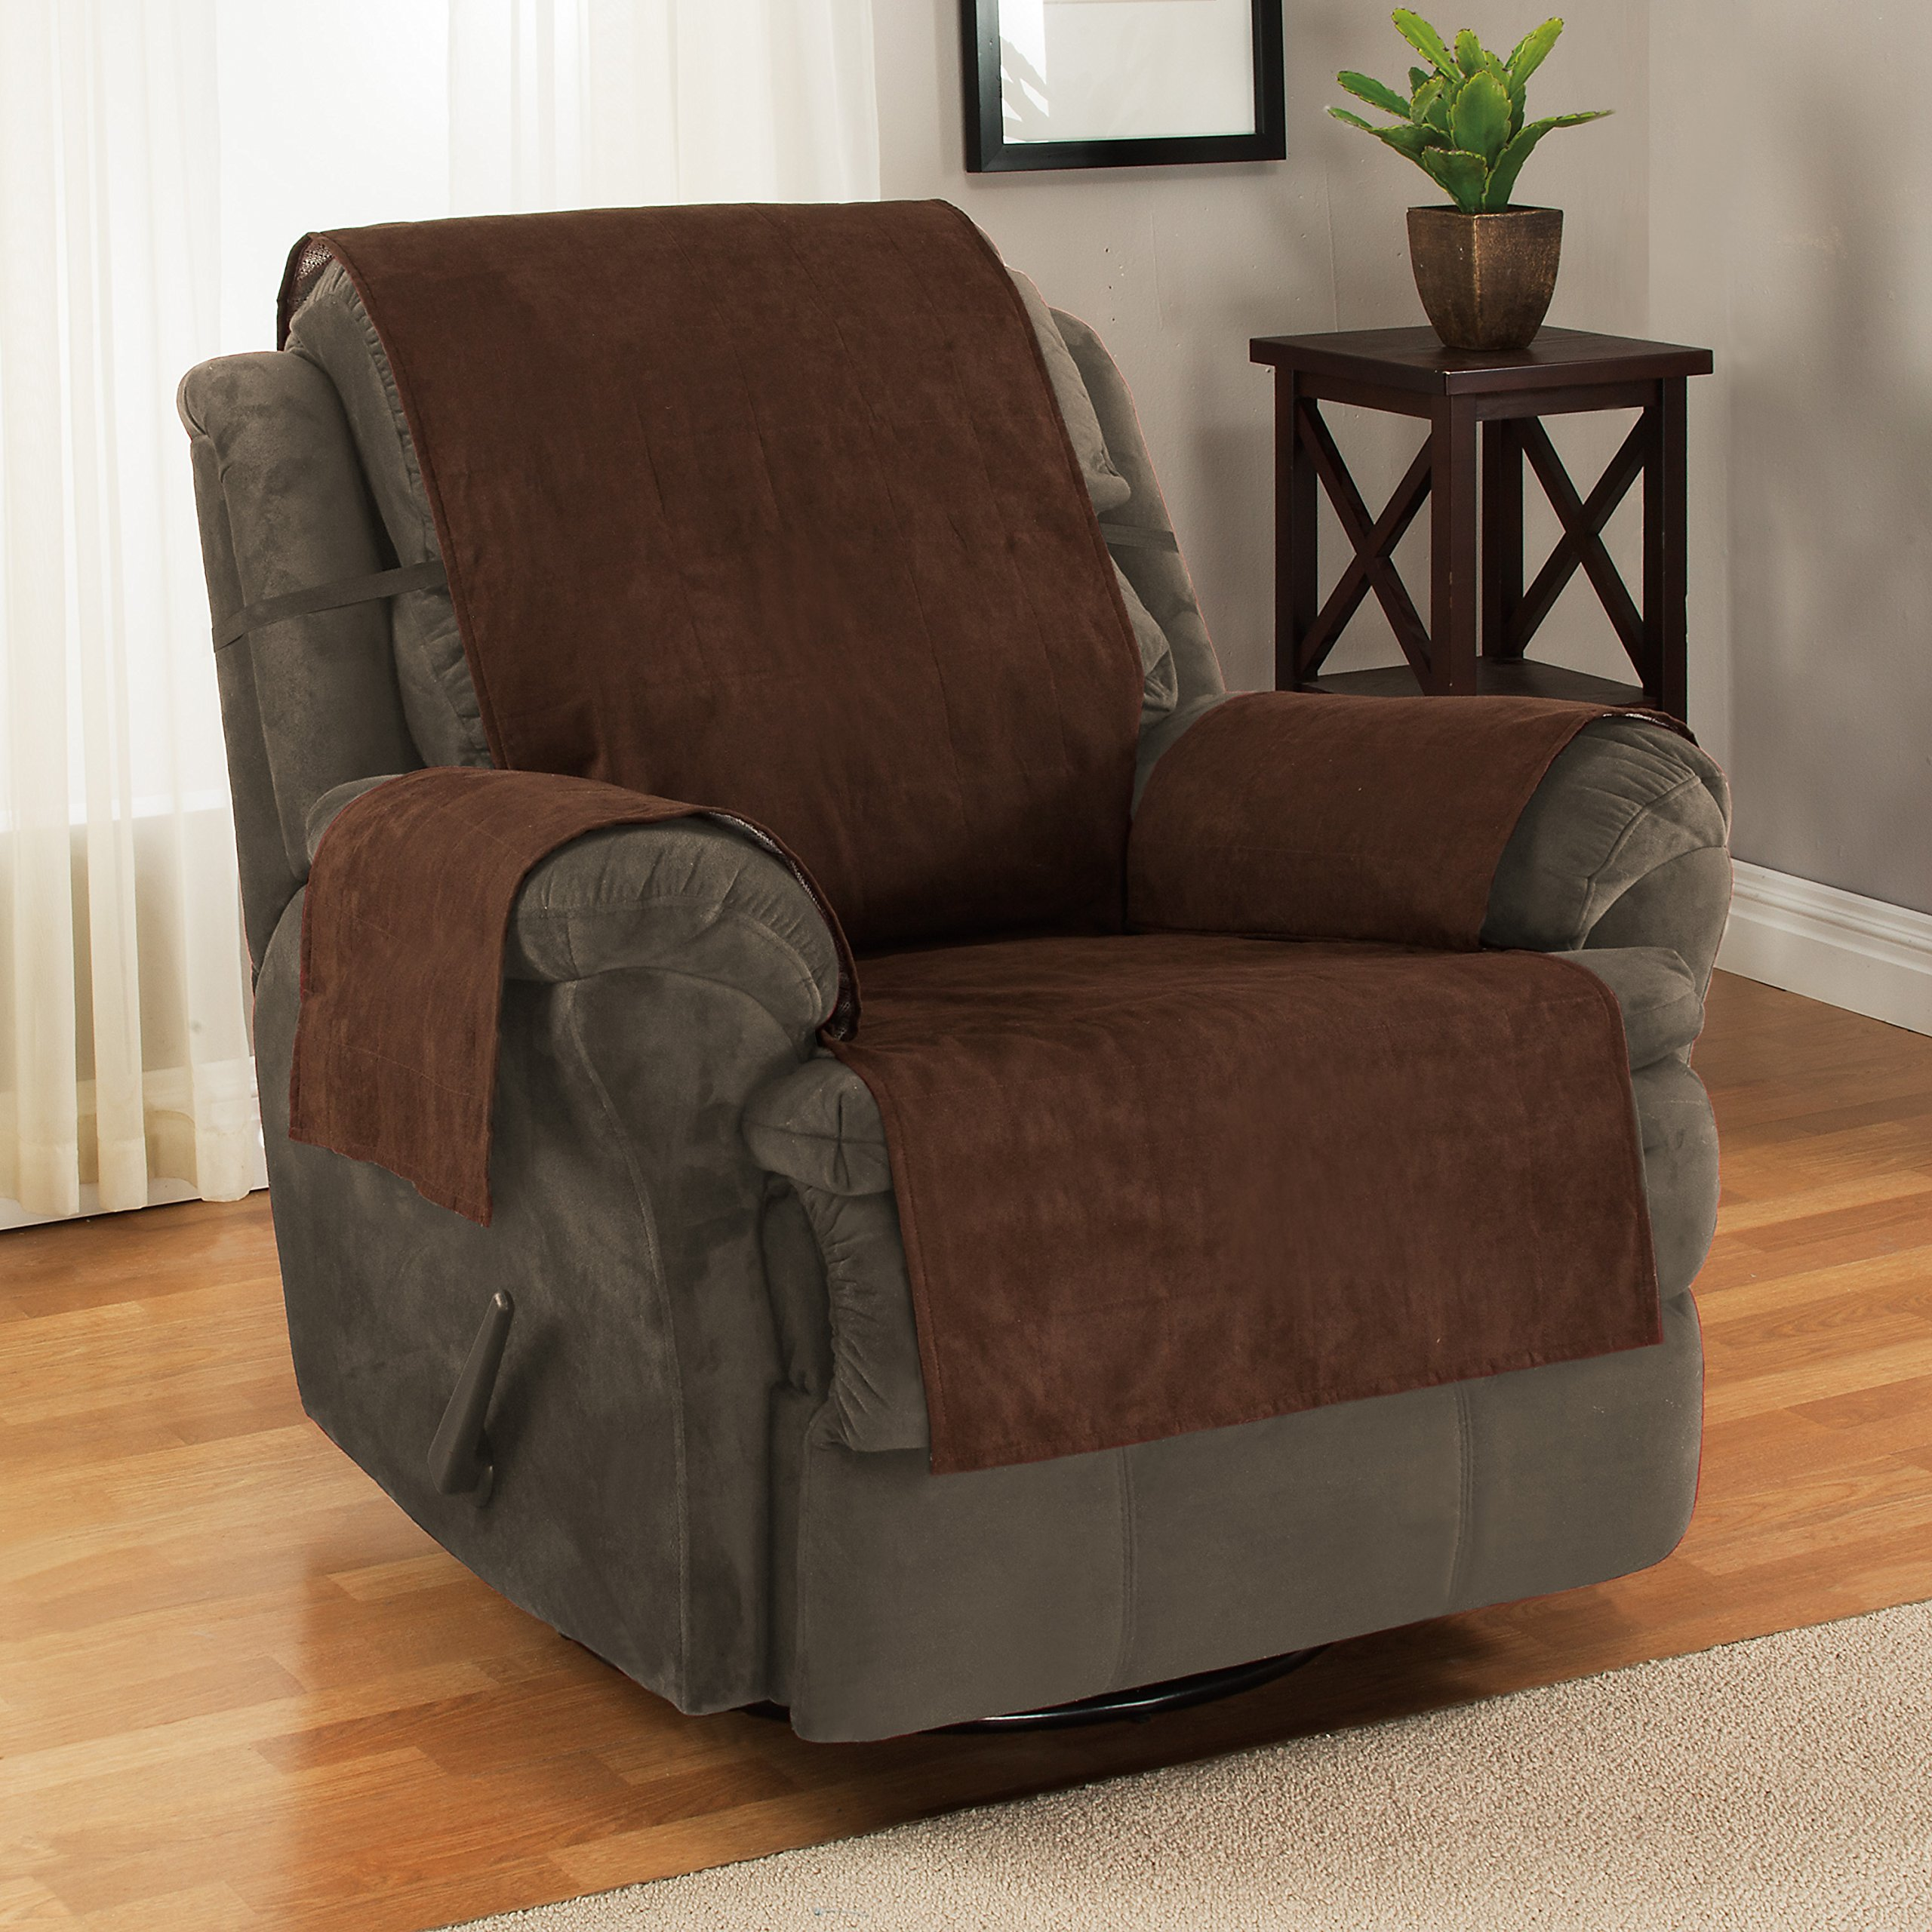 Furniture Fresh New and Improved Anti-Slip Grip Furniture Protector, Chair Cover, Slipcover, with Stay Put Straps and Water Resistant Microsuede Fabric. Protects from Dogs. (Recliner, Chocolate)  by Furniture Fresh